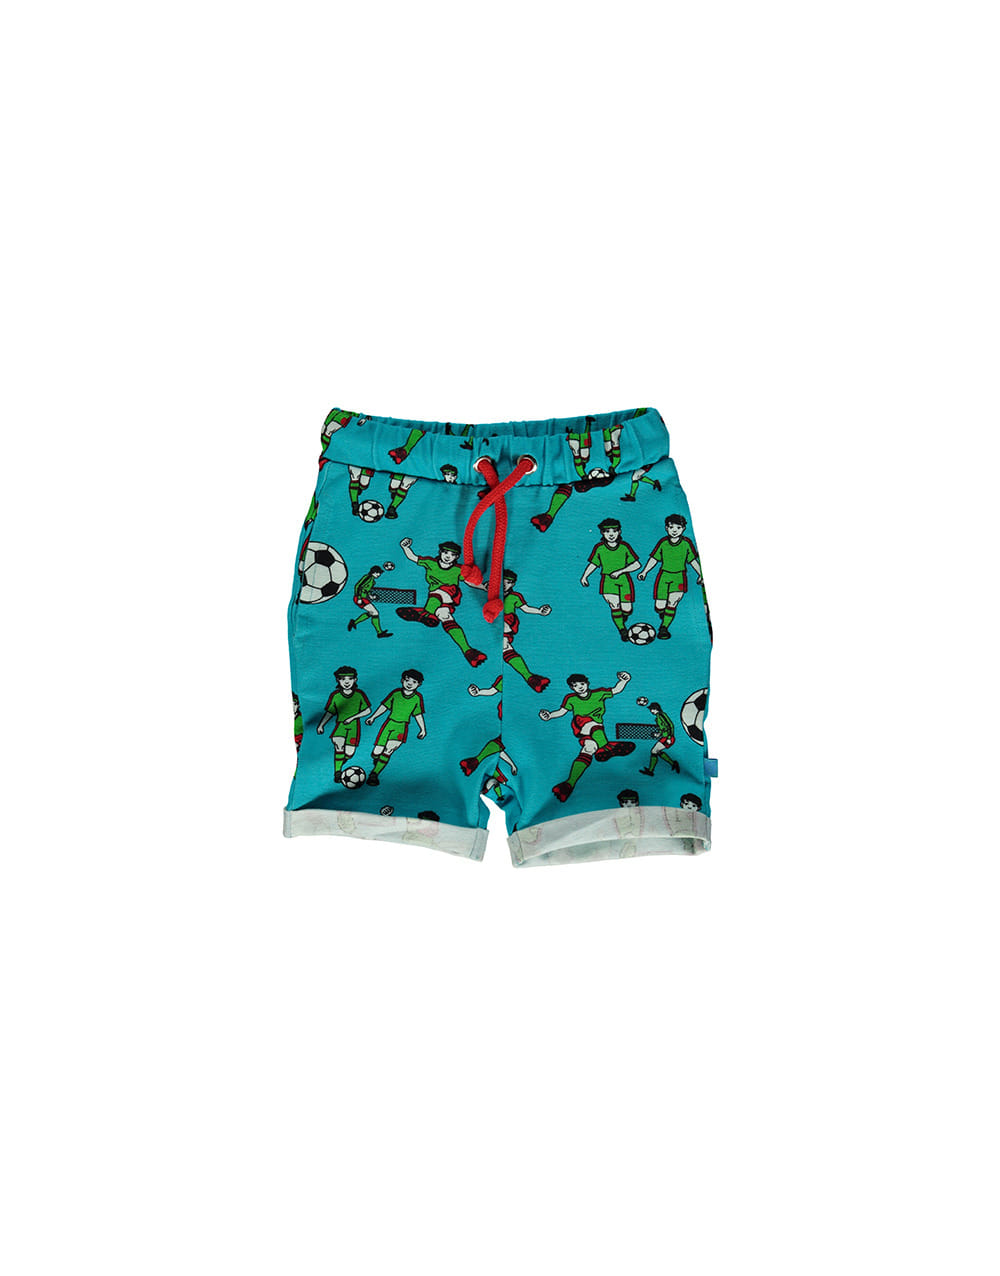 SMAFOLK Shorts with Football  Blue Atoll